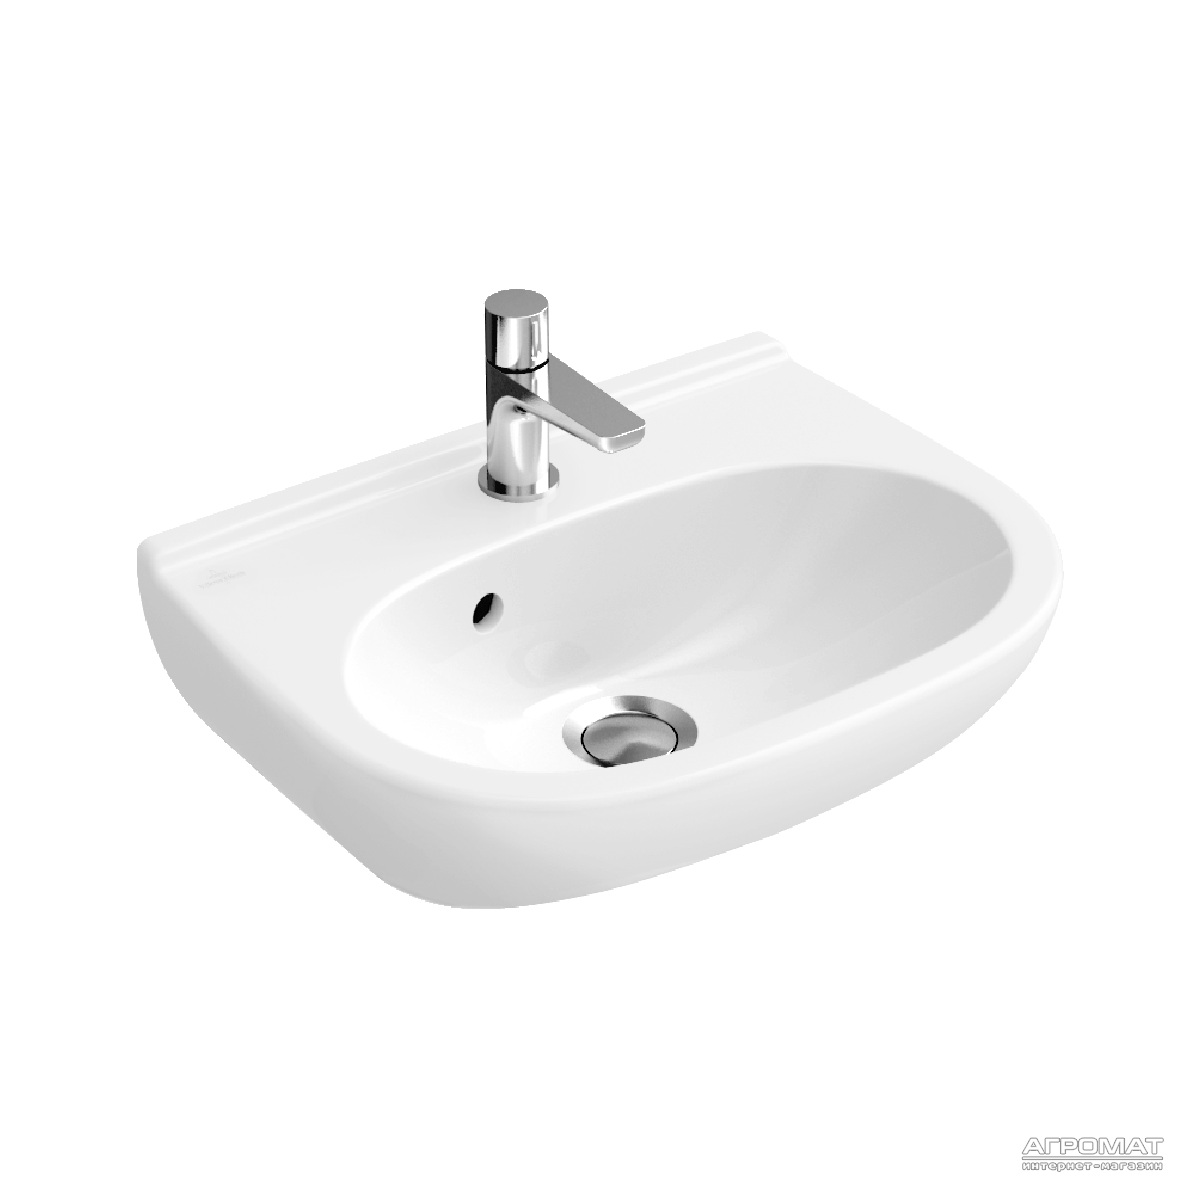 Sink PNG images free download.